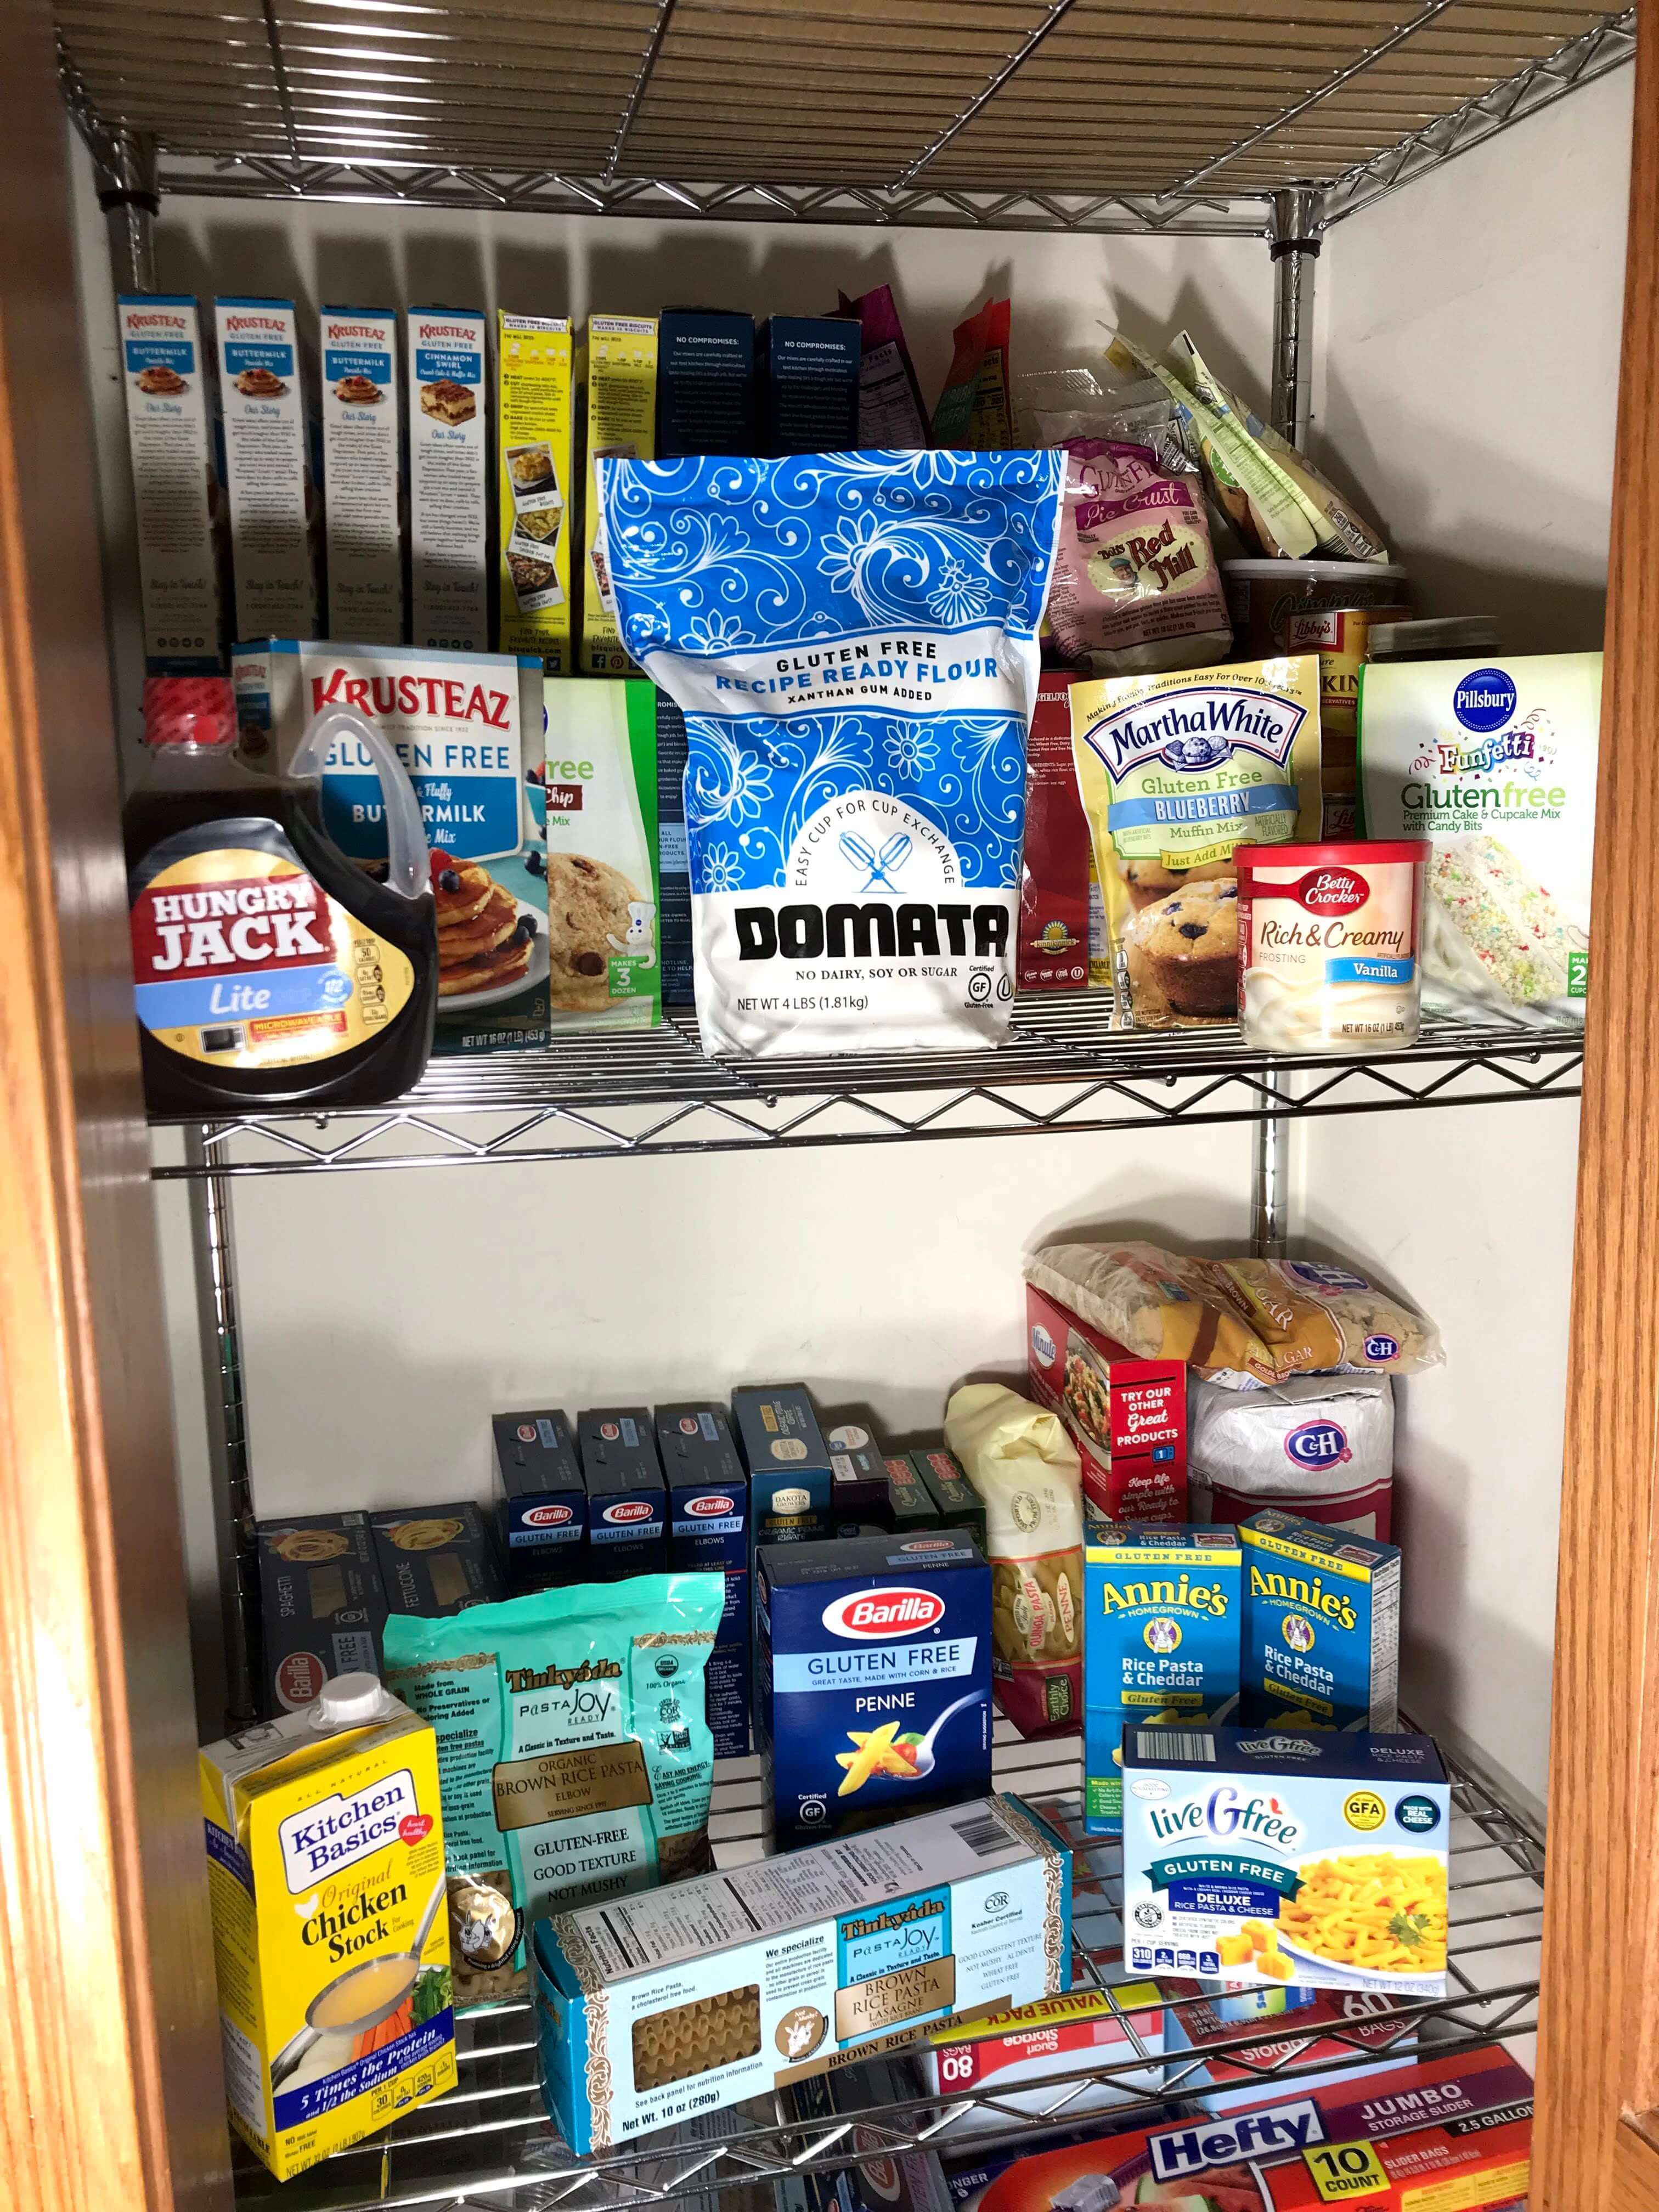 Our broom closet transformed into a pantry for gluten products